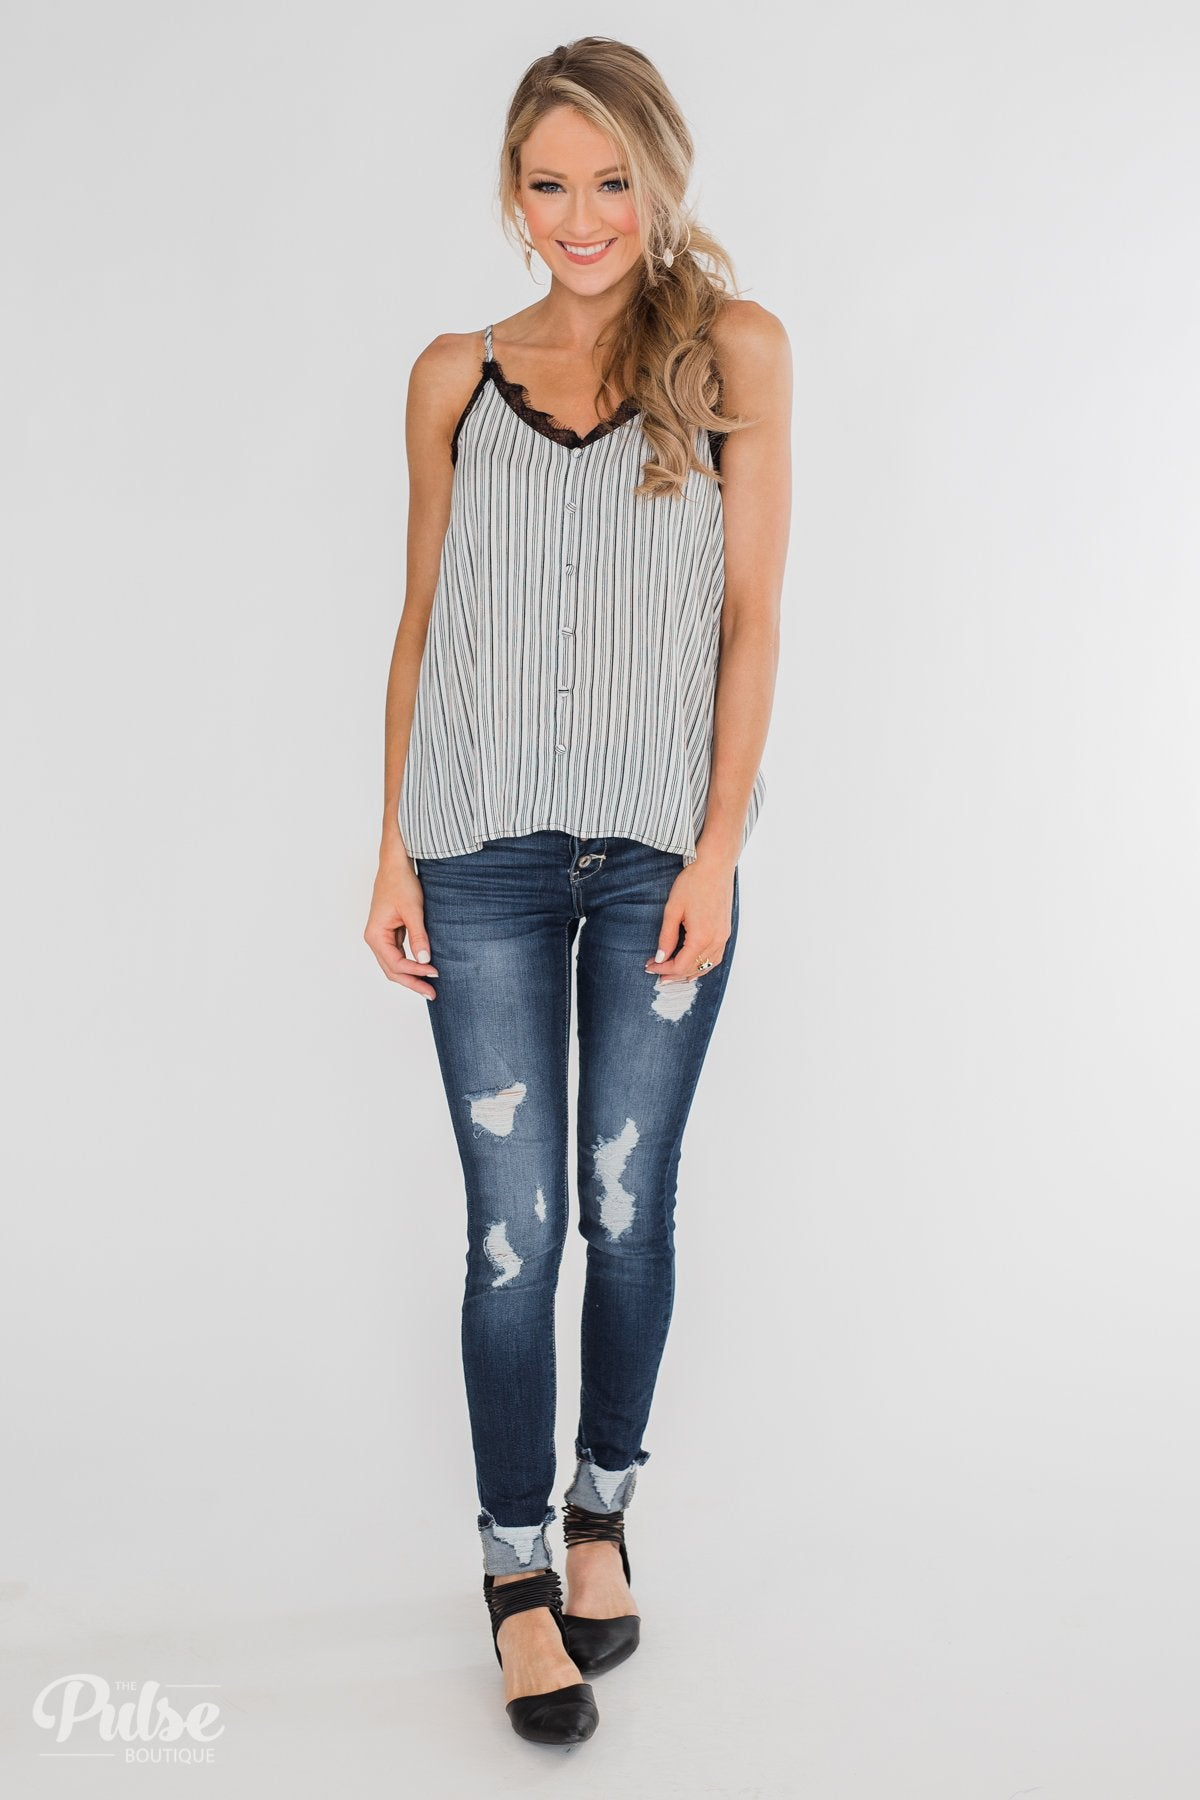 Add A Touch of Lace Striped Tank Top- Black & White